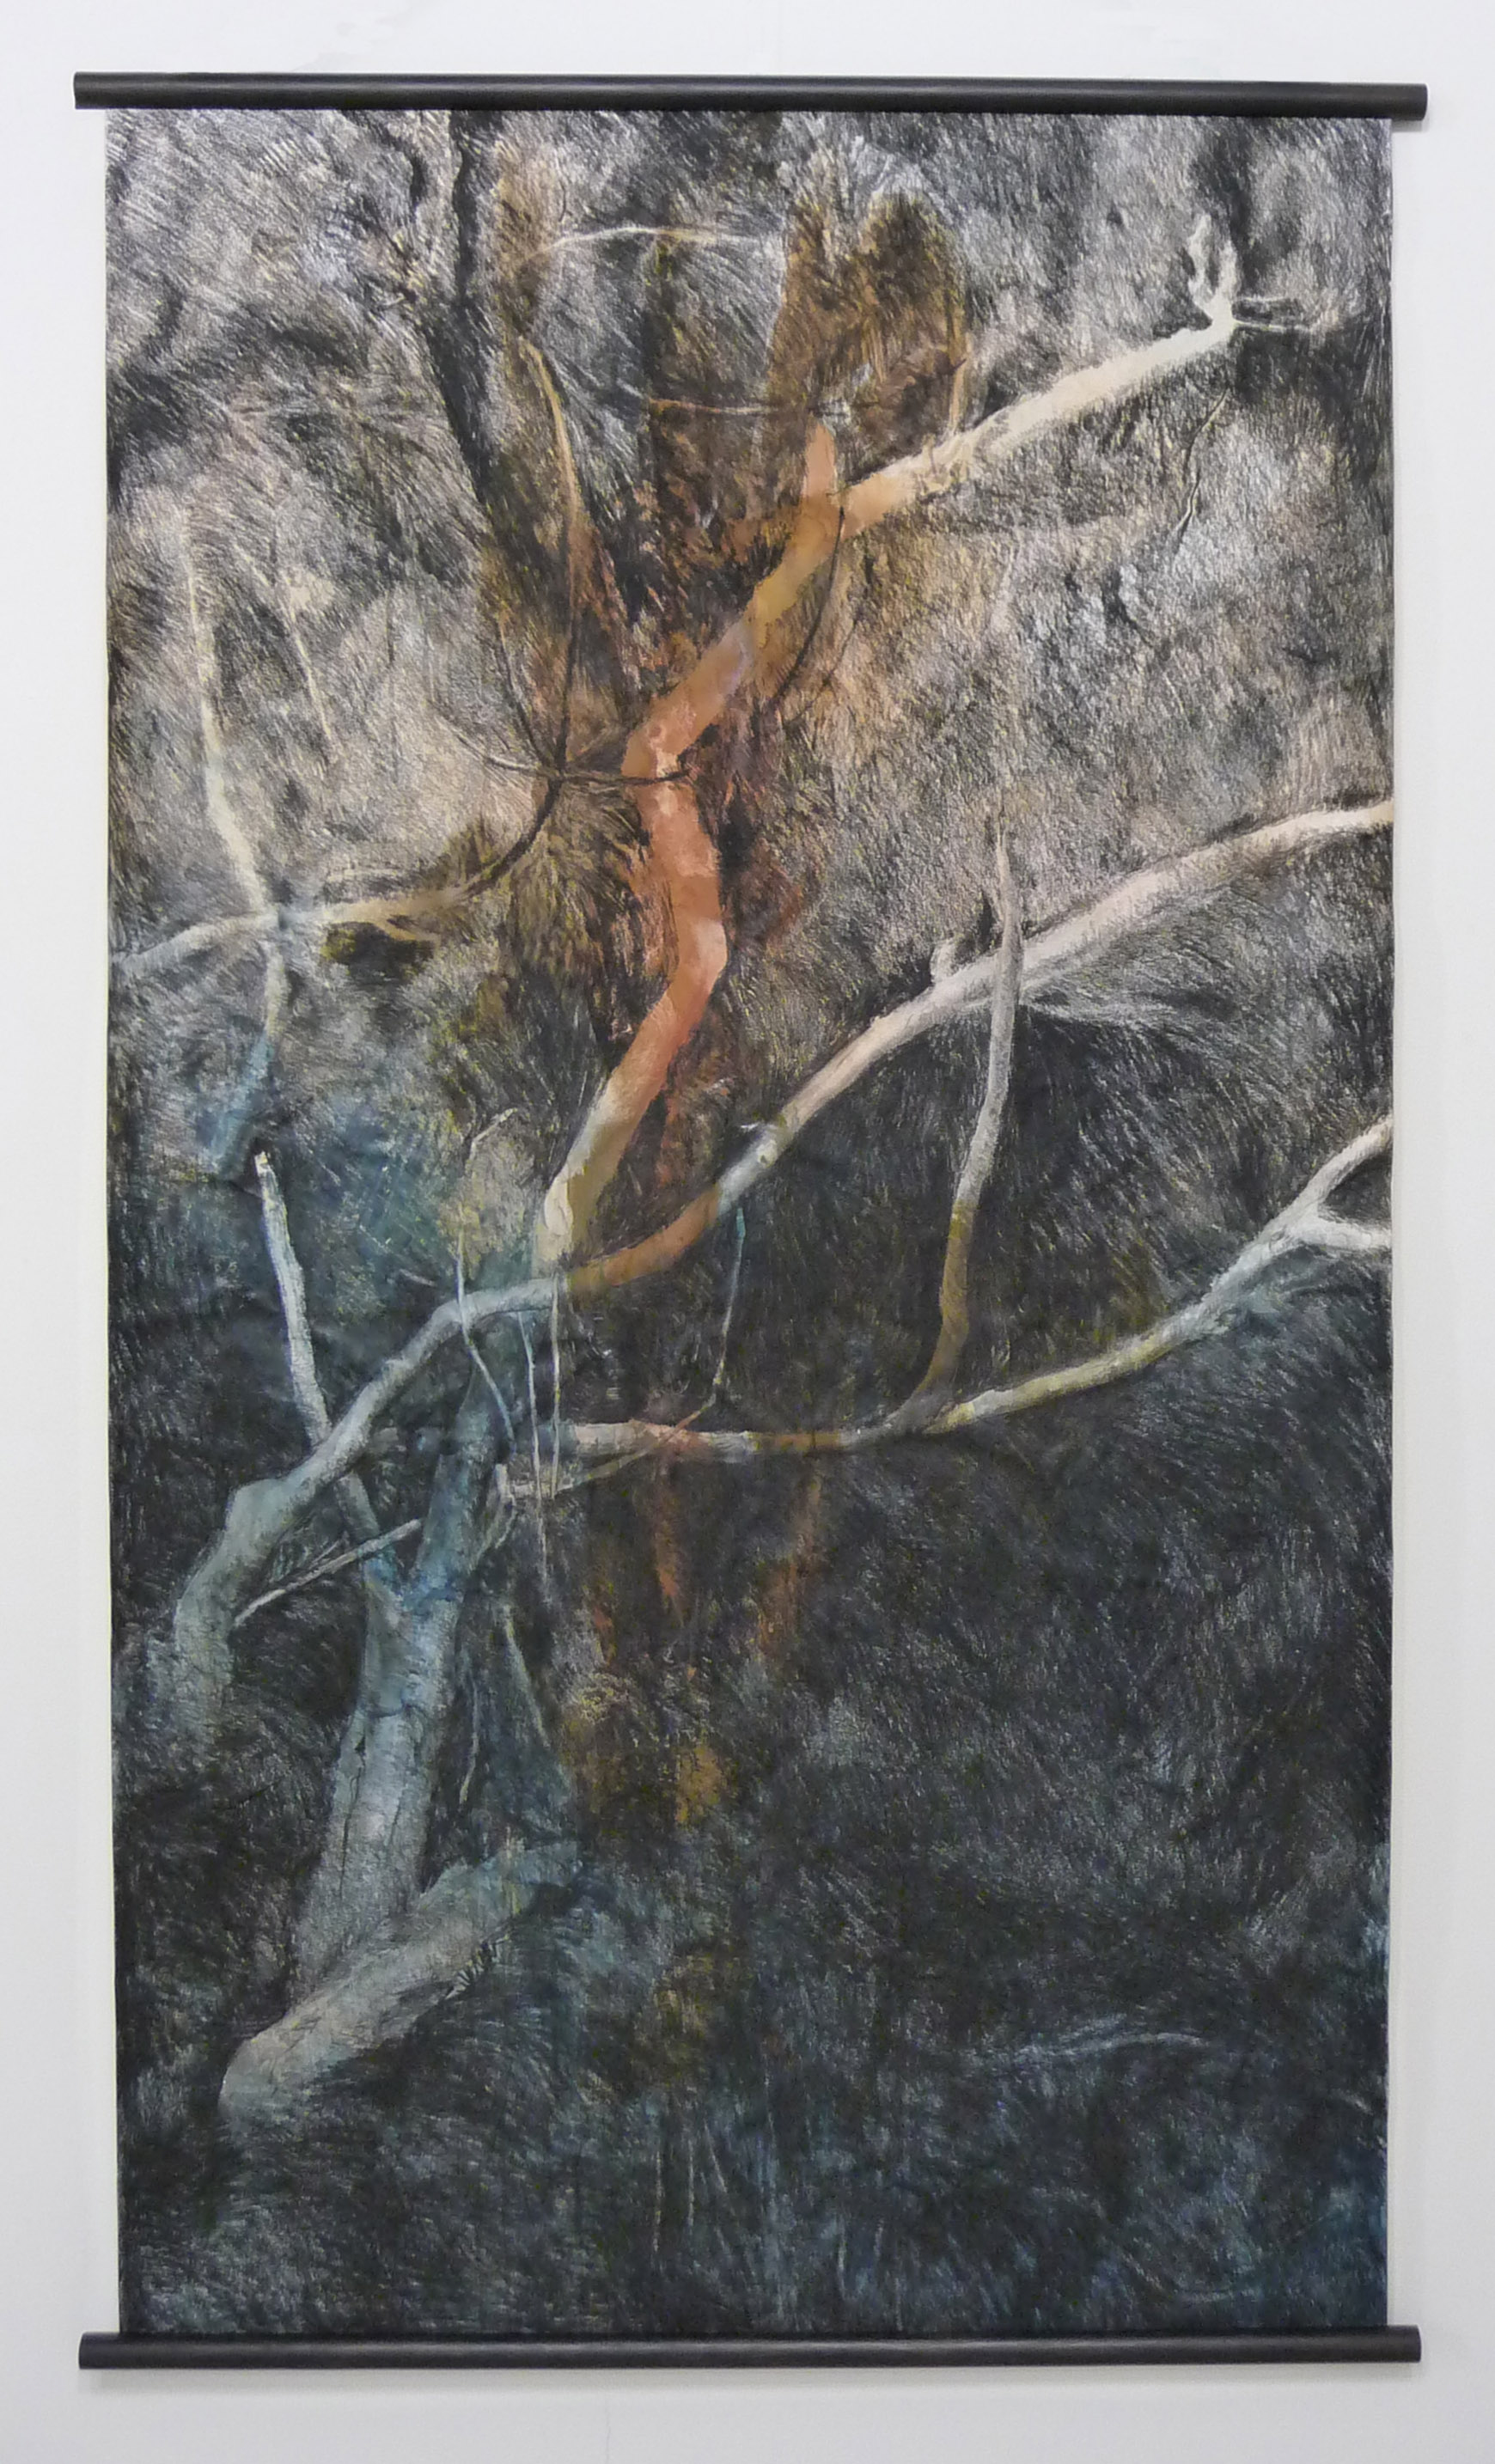 <p><strong>Death of Heather                     750 euro</strong><br />Casein and charcoal on paper   104x176 cm